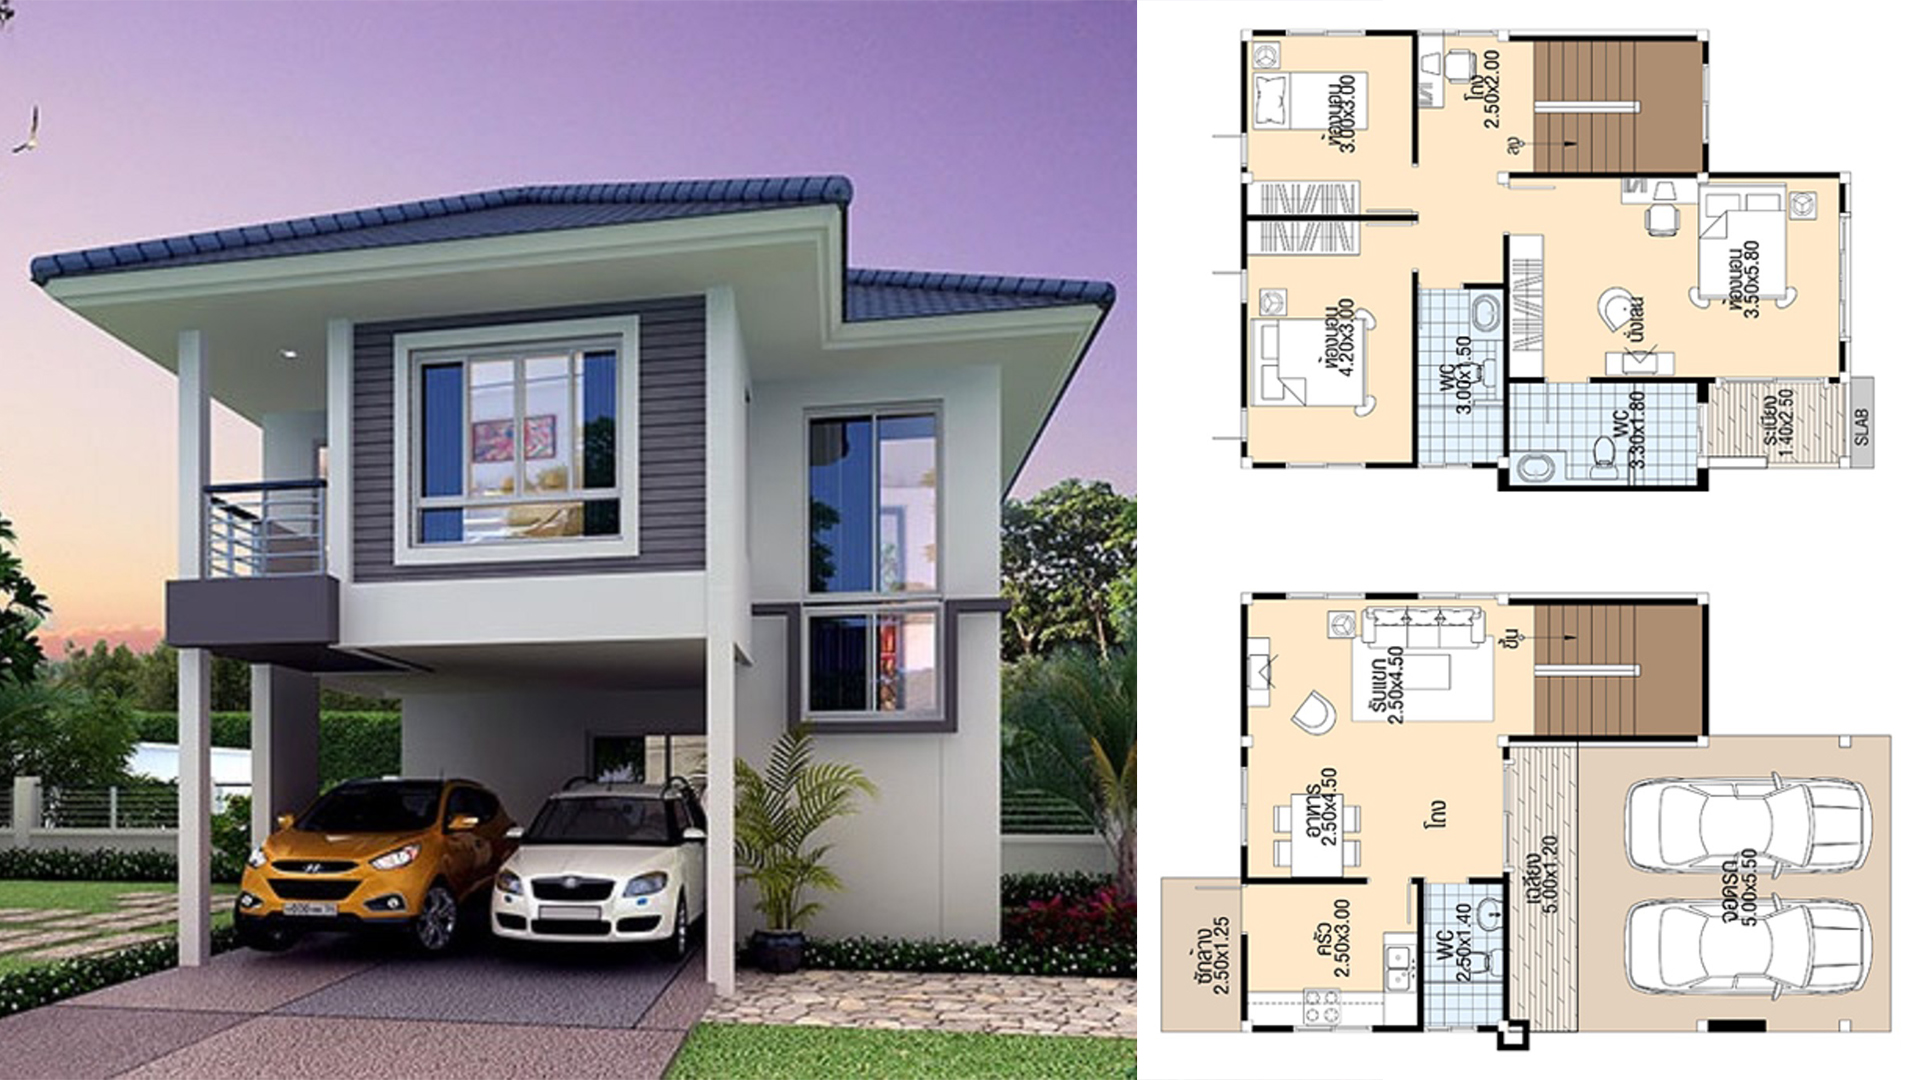 House Design 3d 7.5x11 with 3 bedrooms